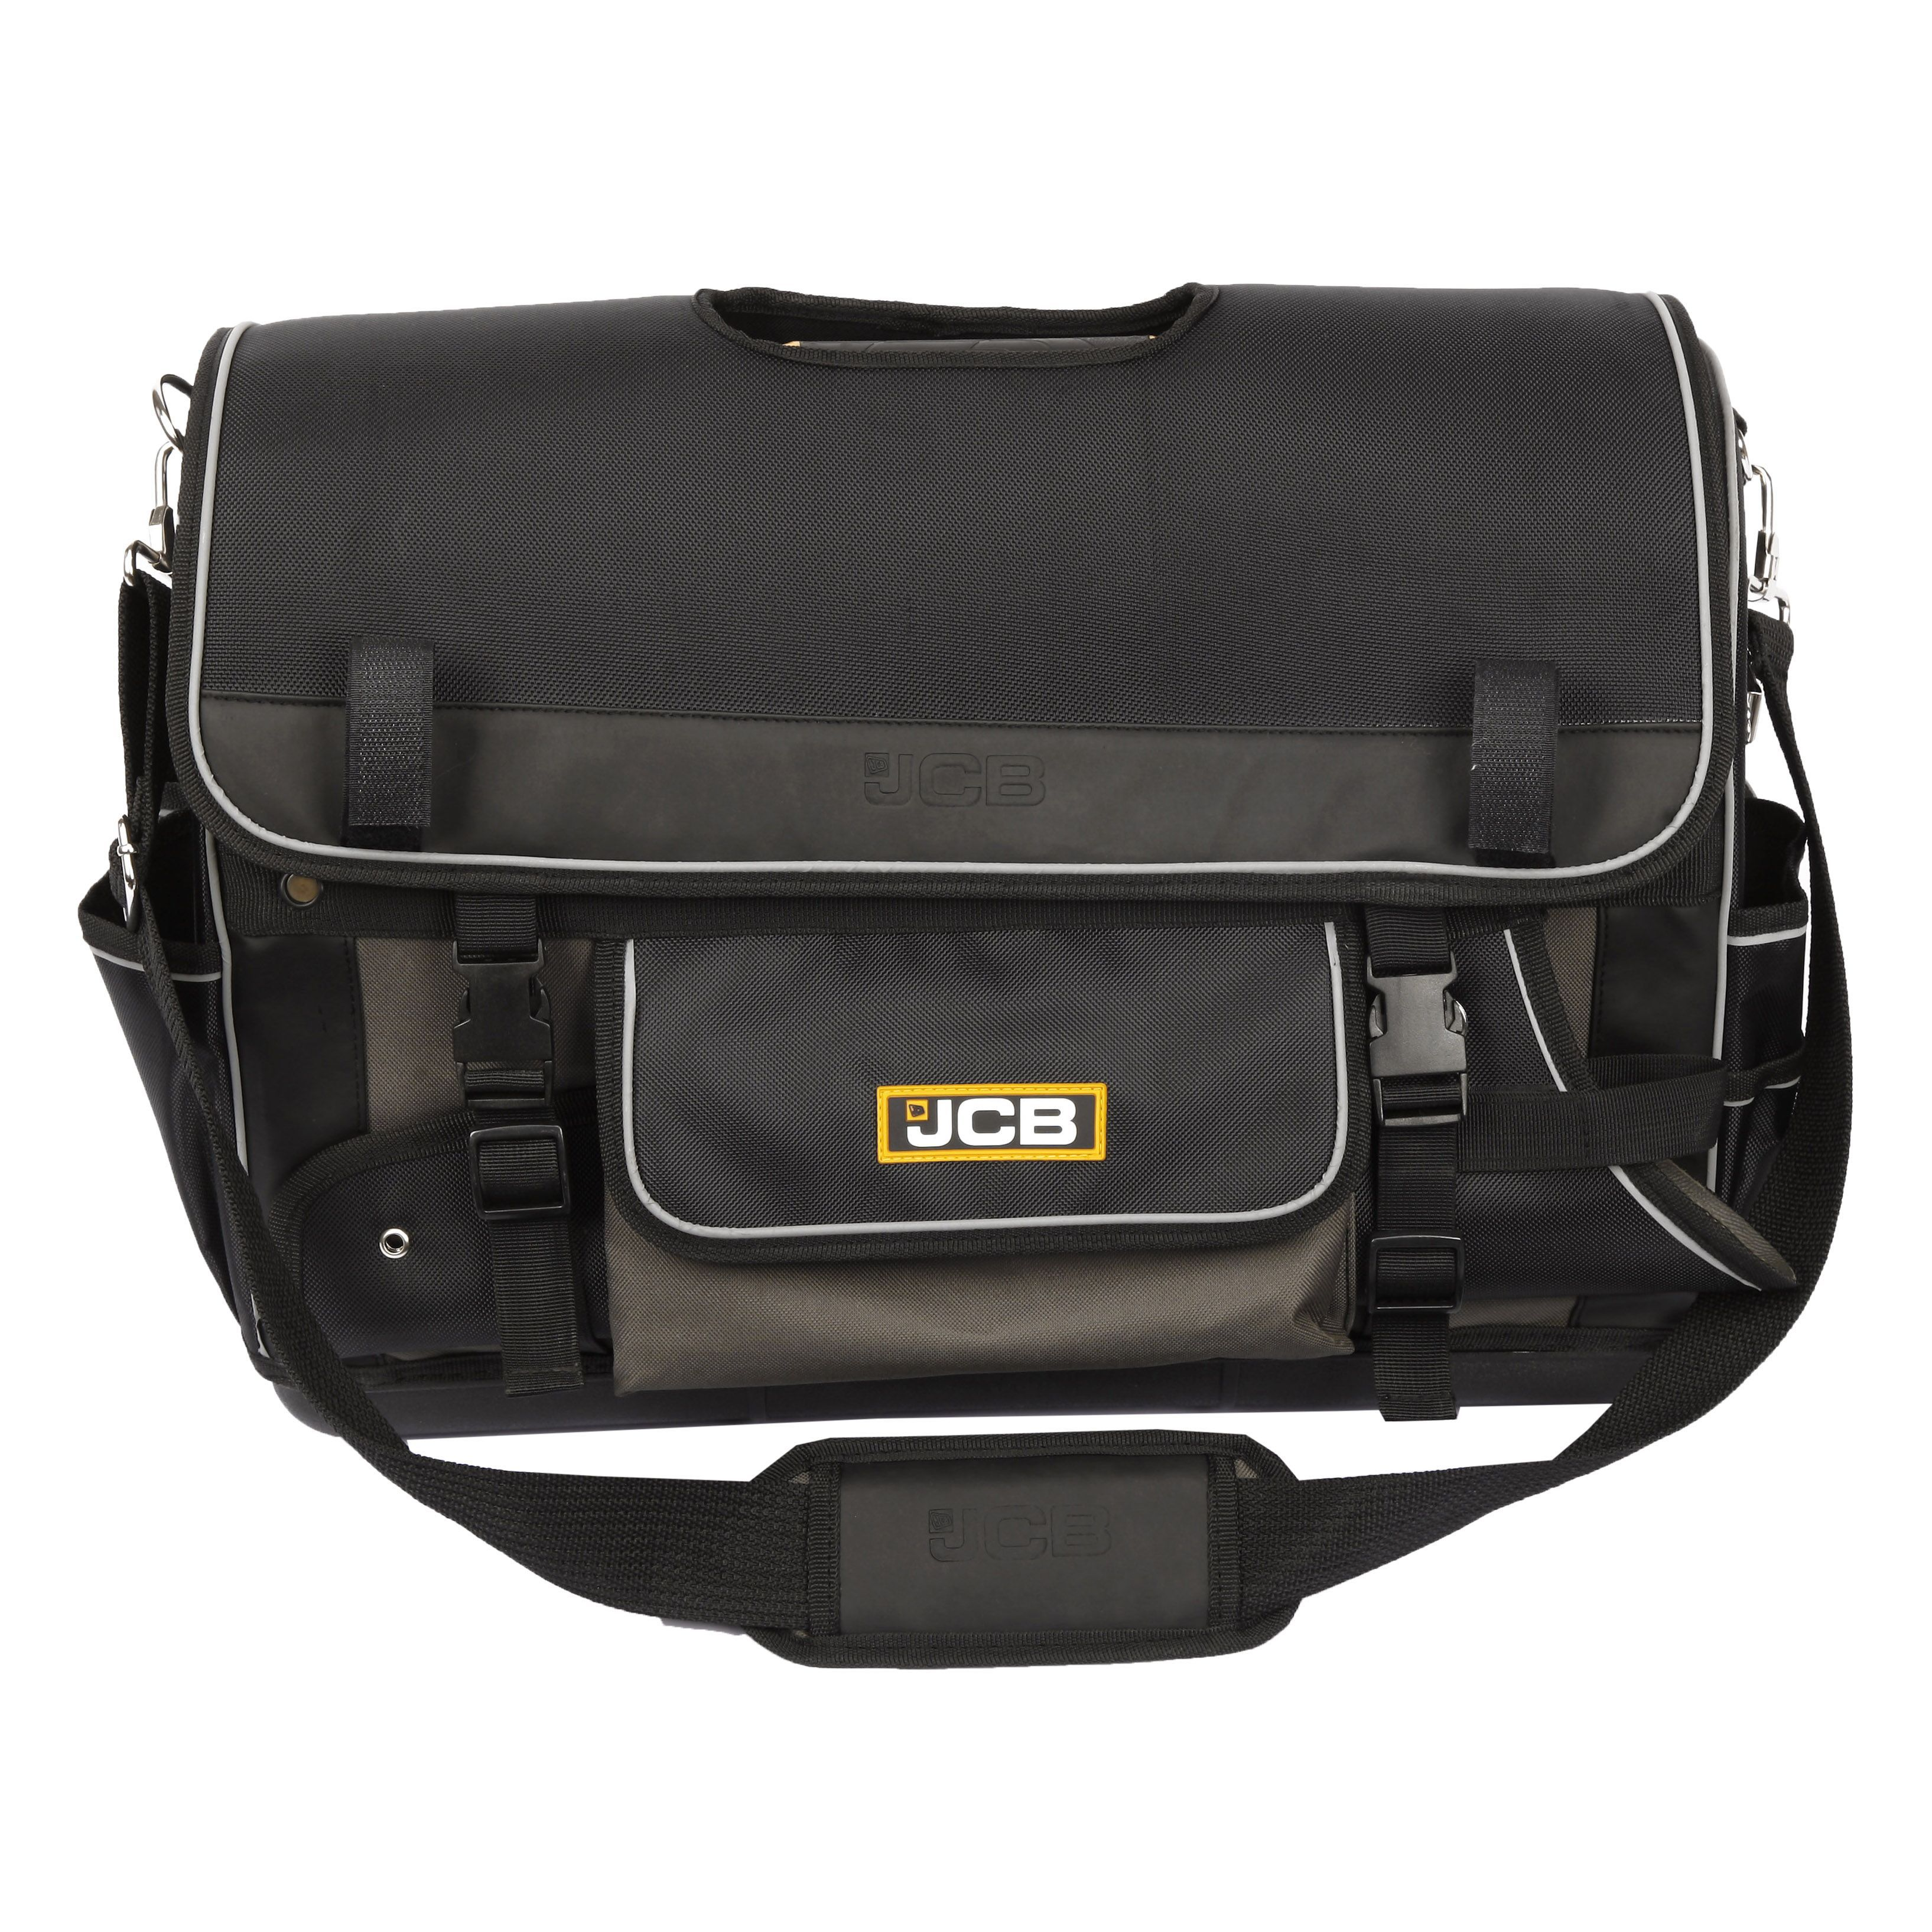 JCB Iron Plated Open Tote with Cover Tool Bag  : 505293148726401c from www.diy.com size 3270 x 3270 jpeg 1141kB